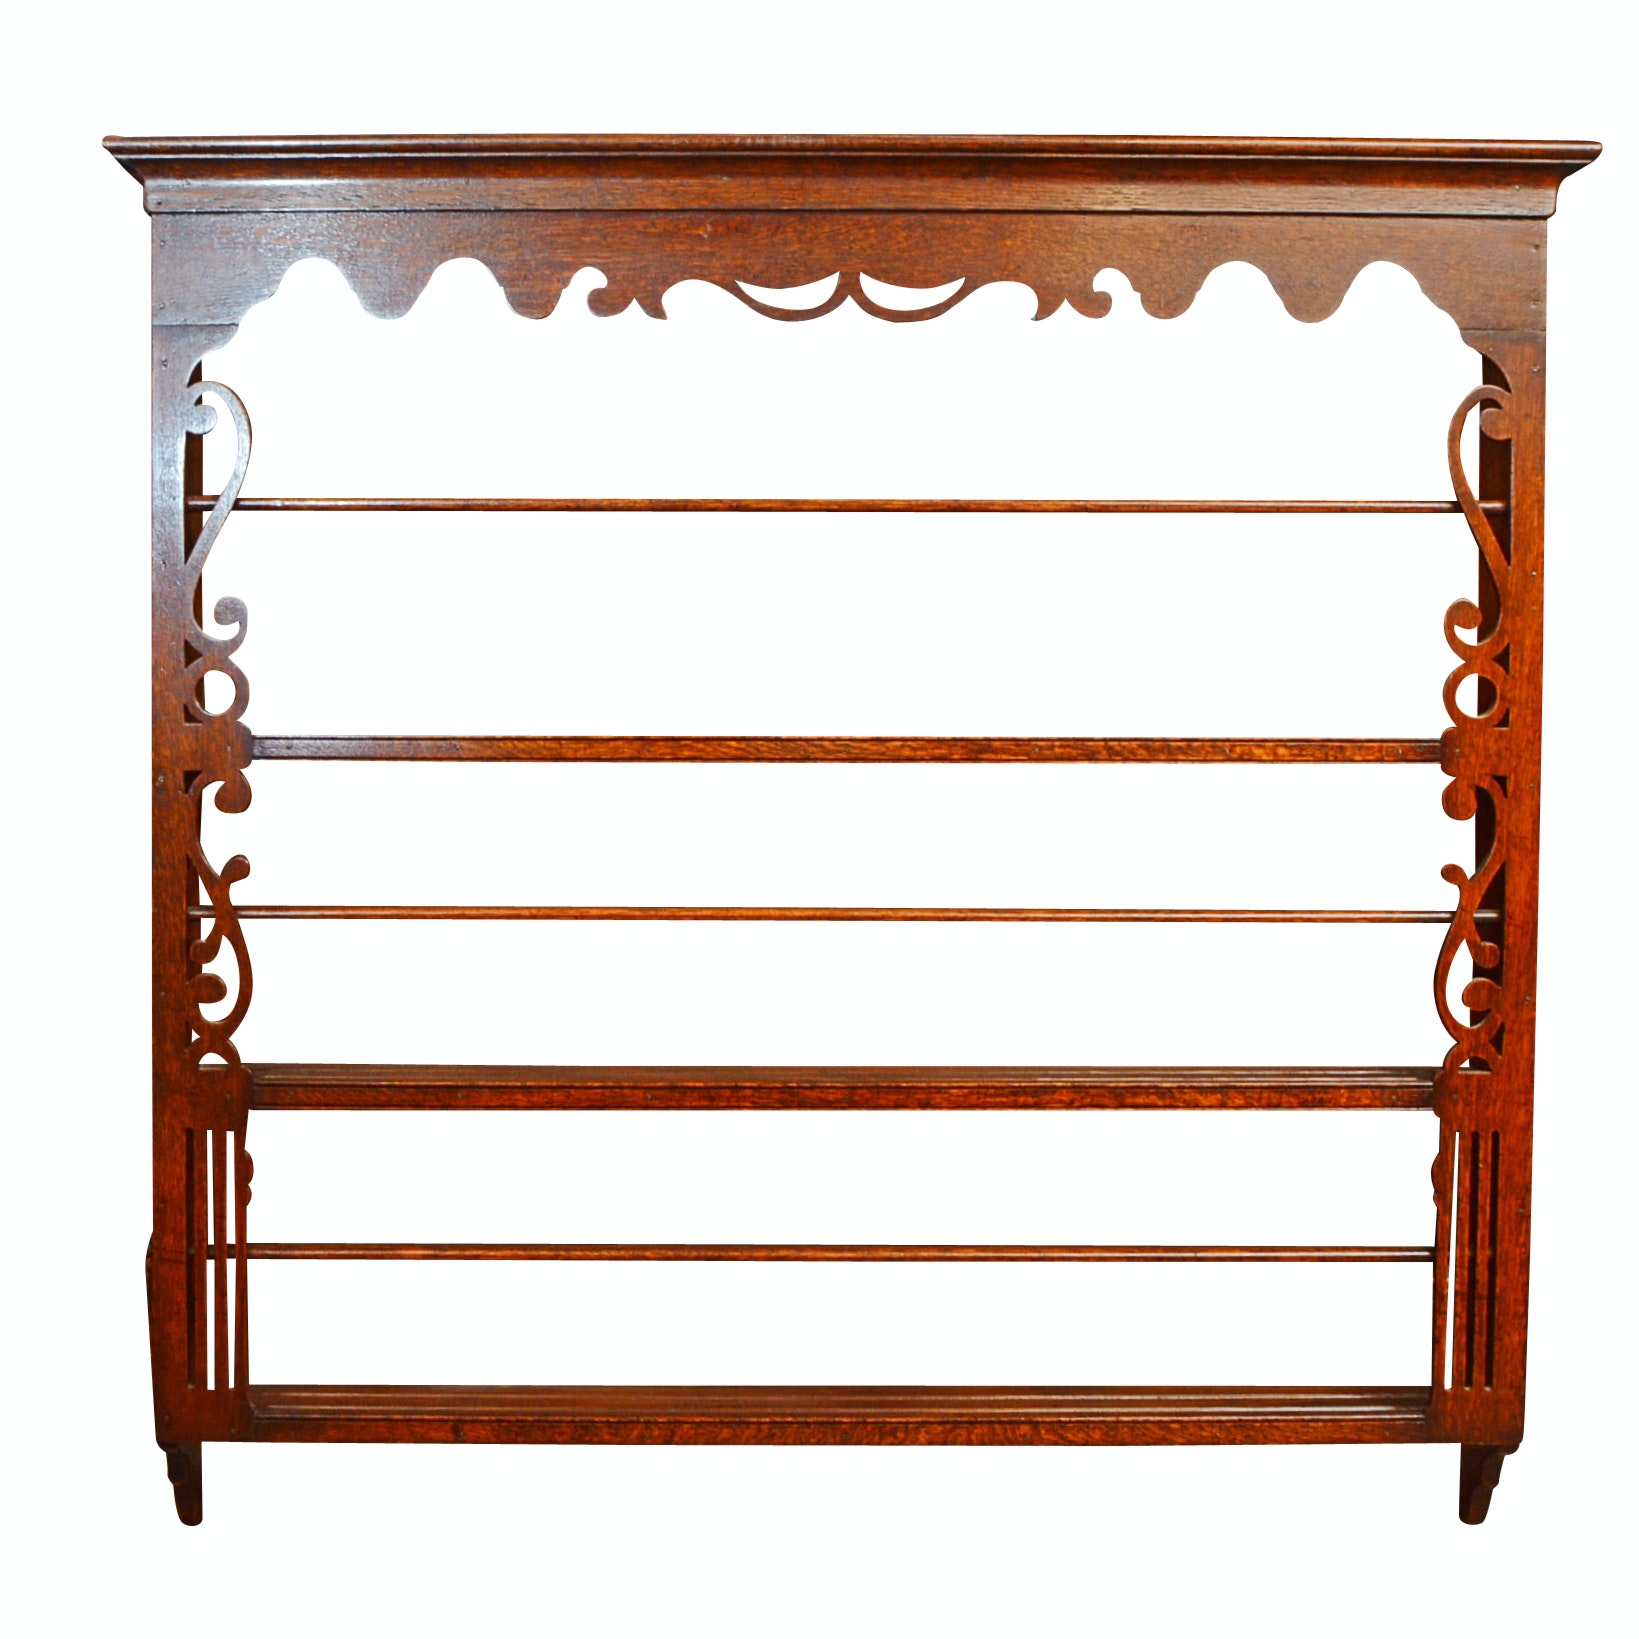 Antique Red Oak Plate Rack